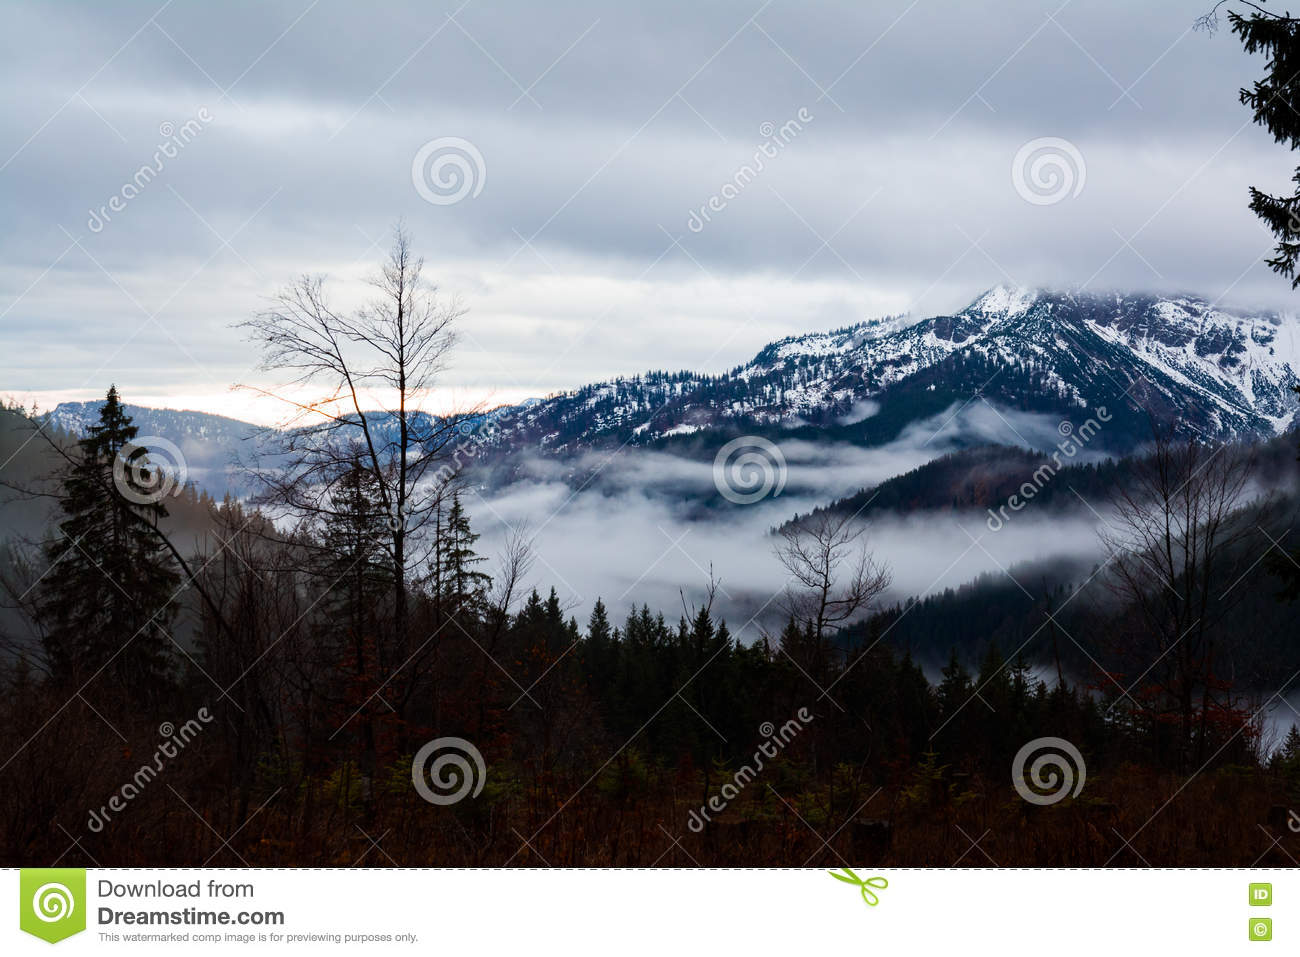 Misty Sunrise Landscape Mountains Trees Forest Hills Valley Morning Spitzingsee Alemanha